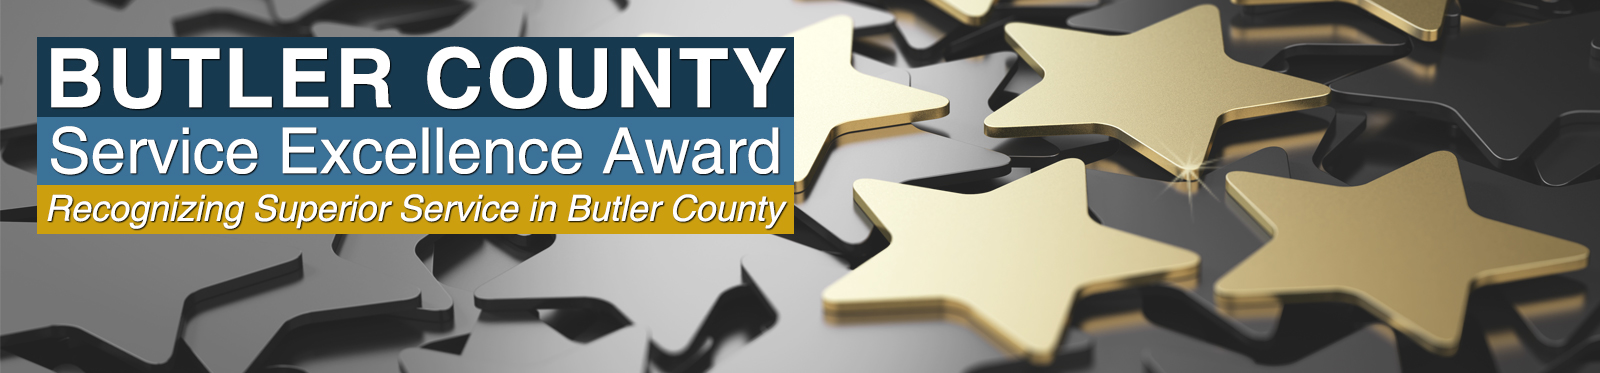 Recognizing Superior Service in Butler County – Superior Service Application Form